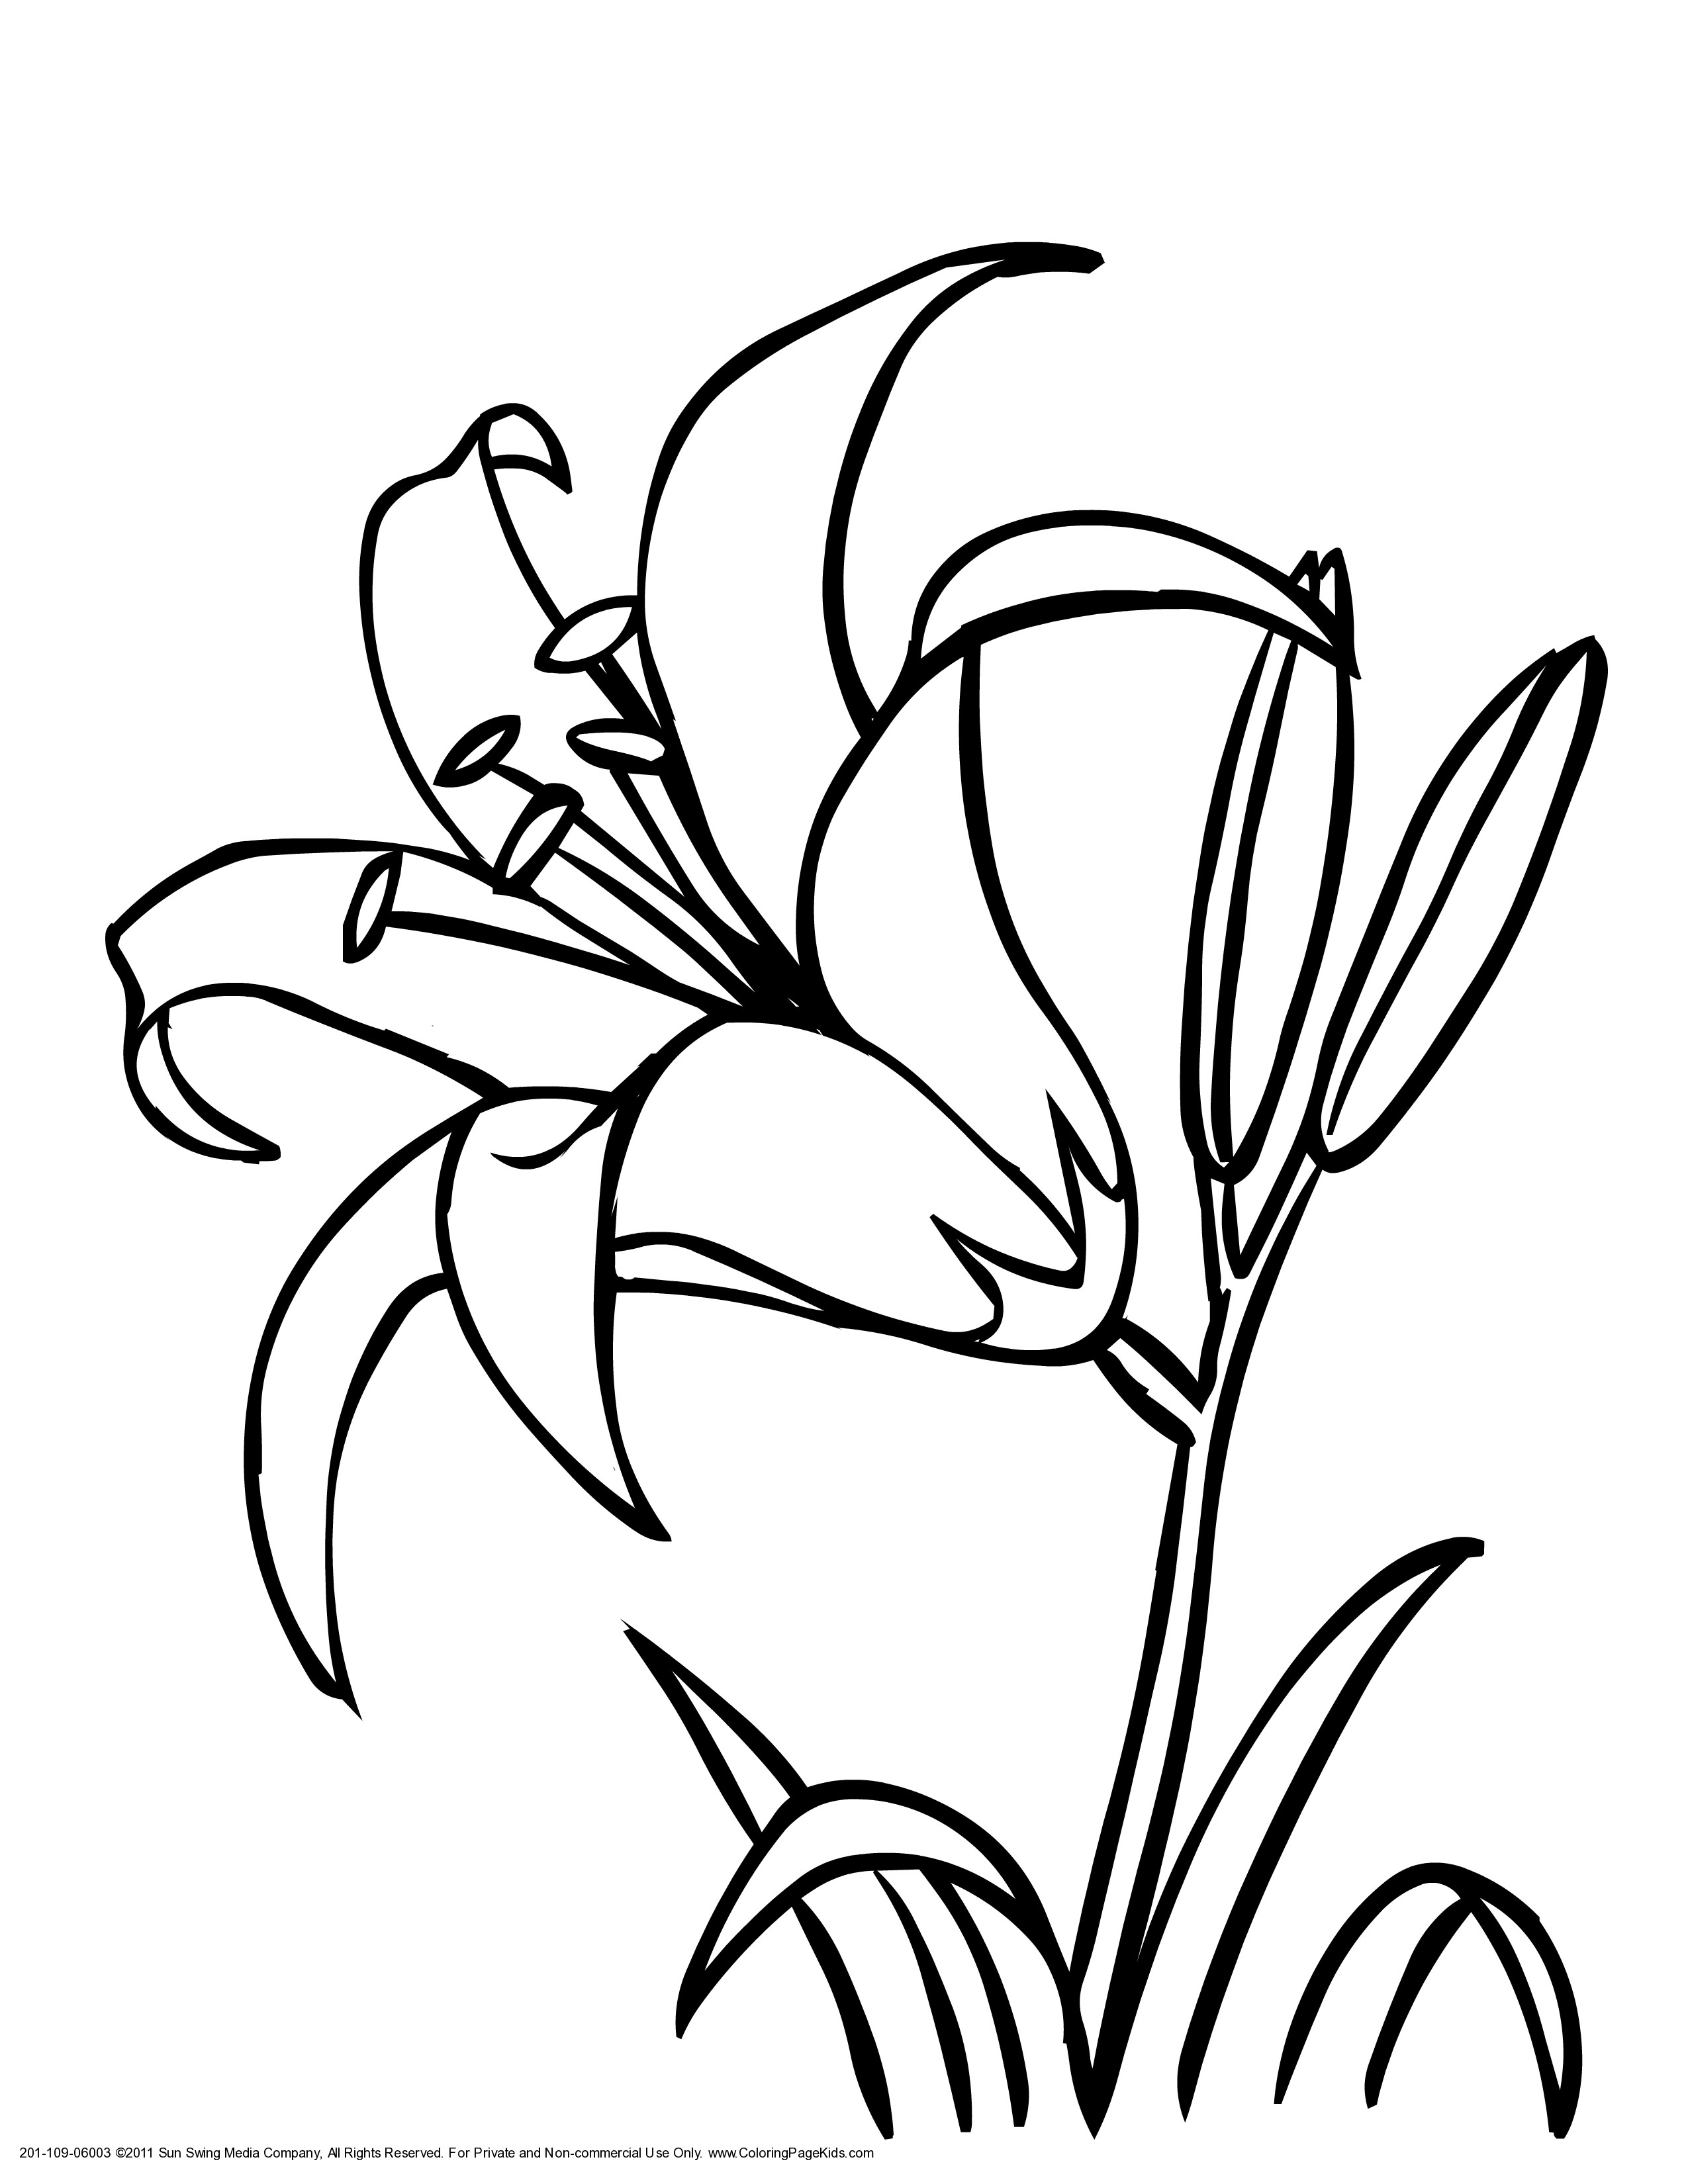 lily coloring pages lily coloring pages to download and print for free lily coloring pages